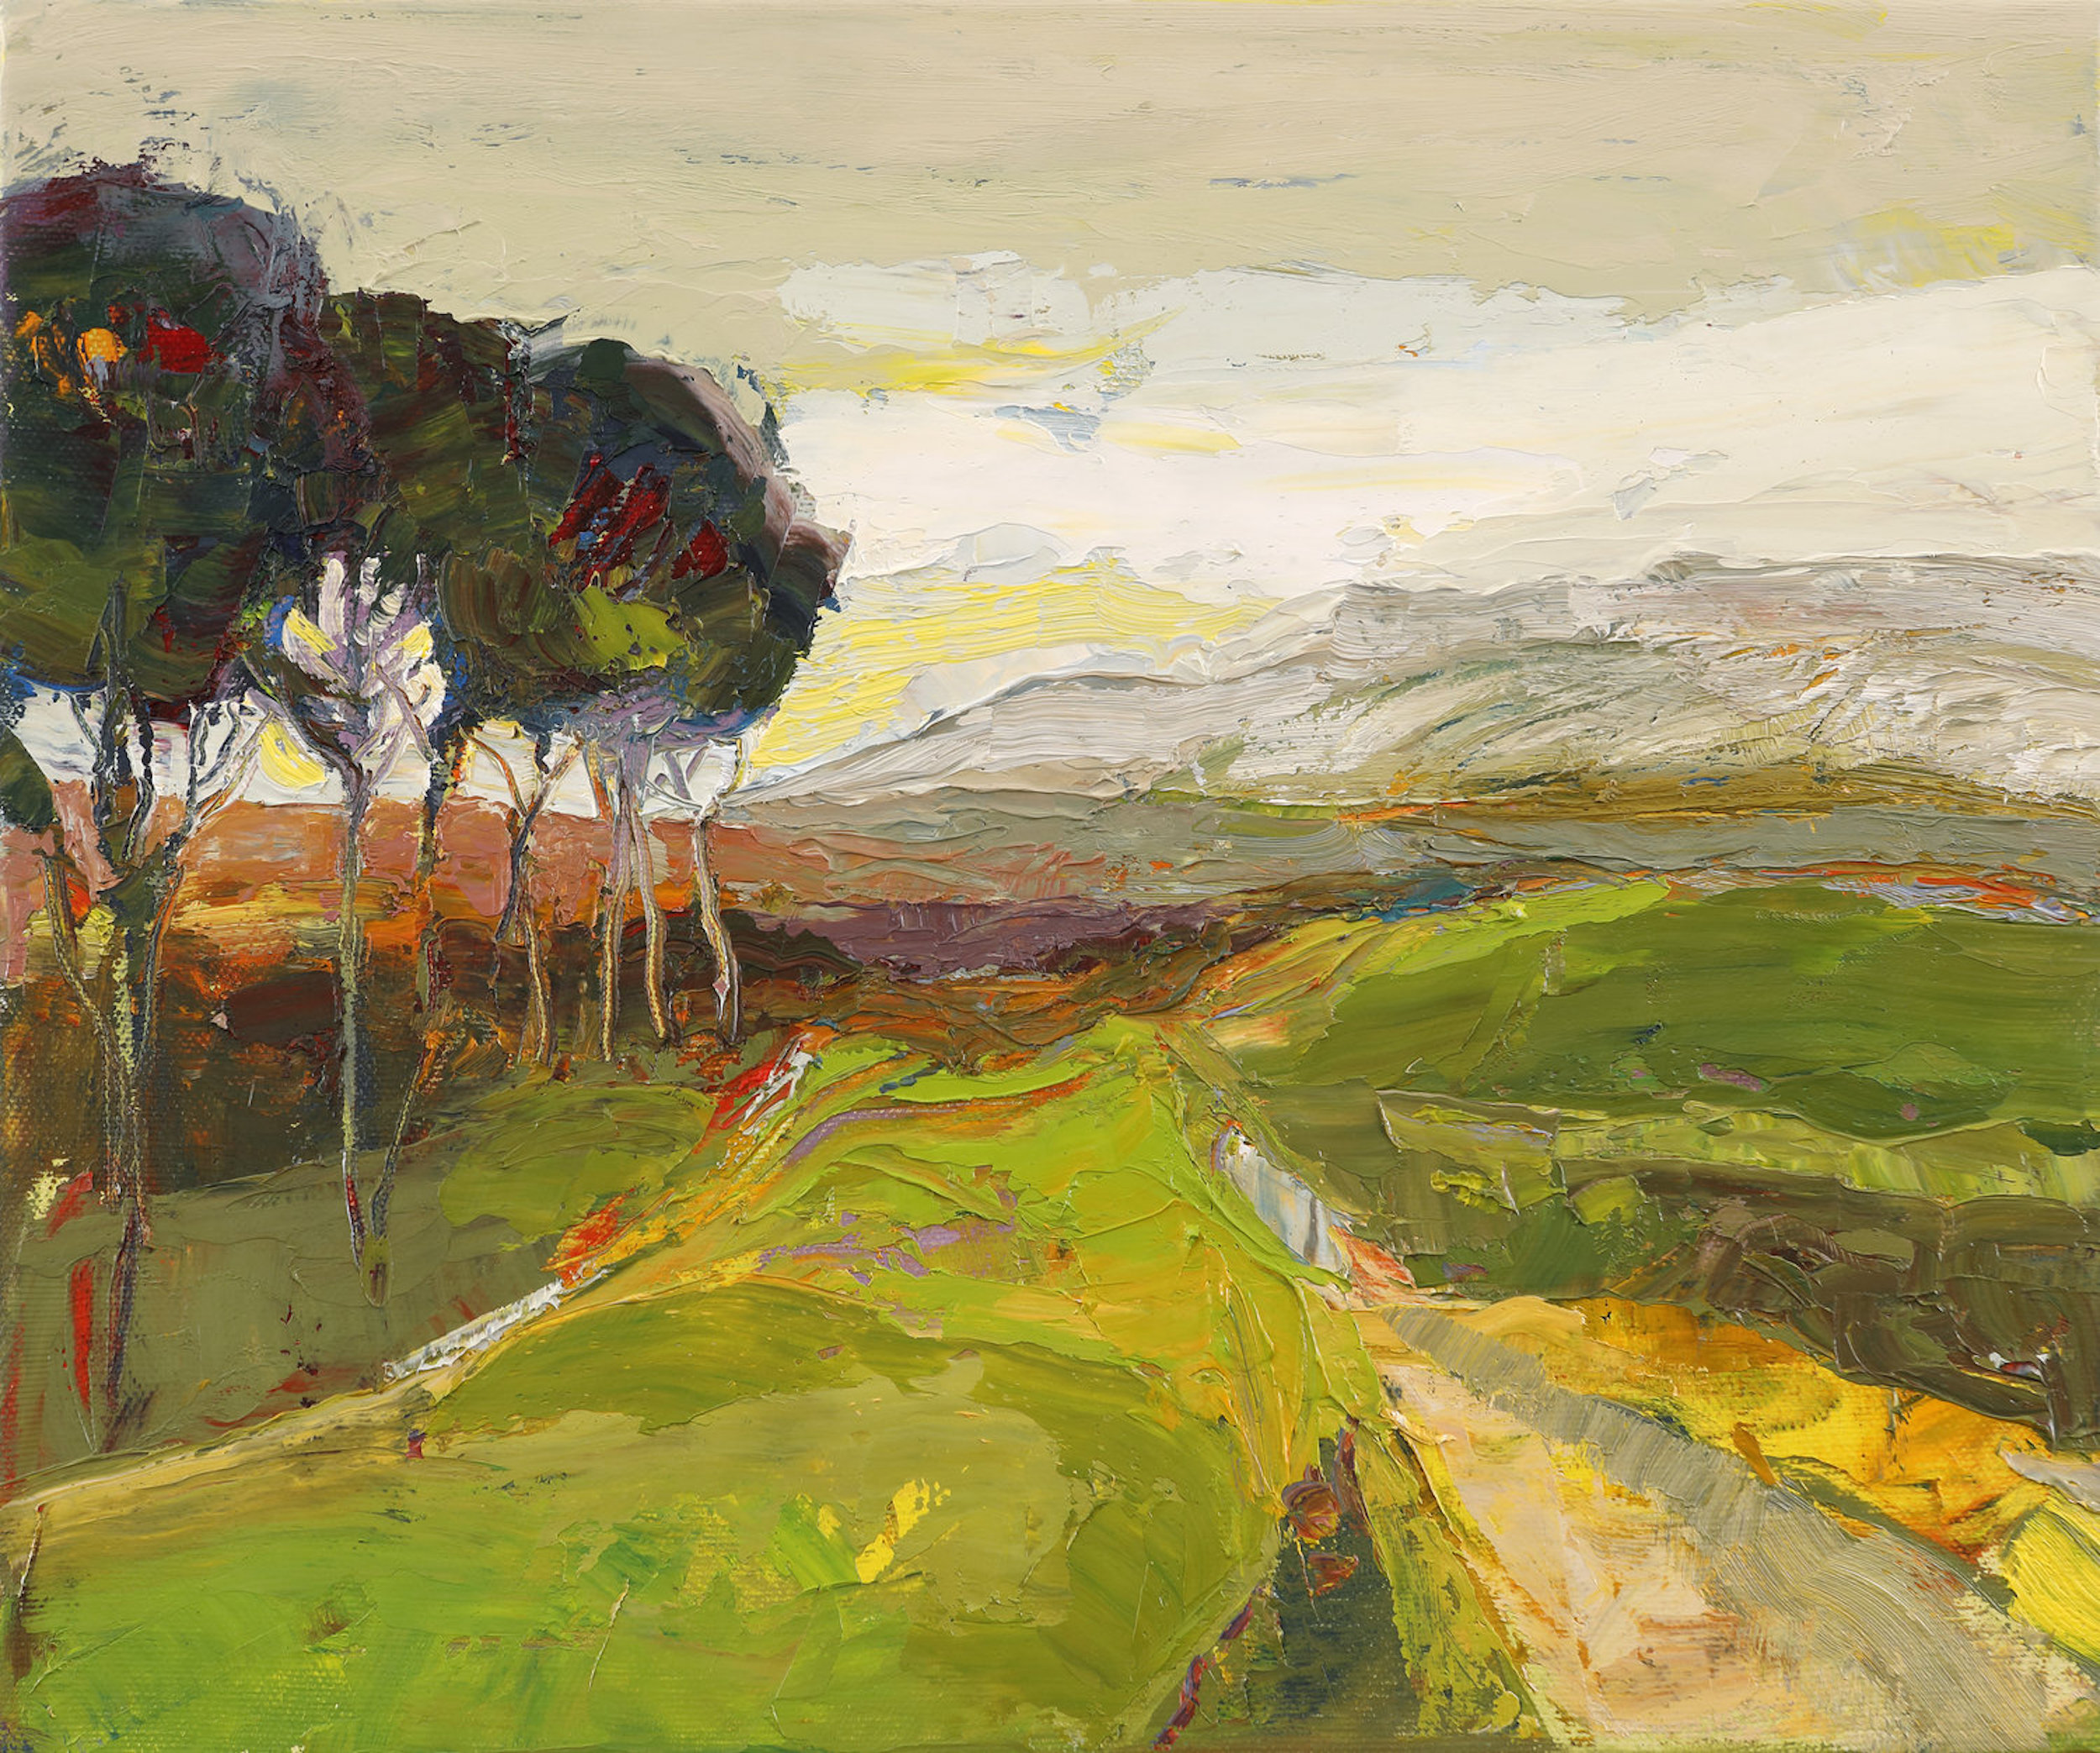 Artist: Kirsty Wither  Title: Leading Us On  Medium: Oil on Canvas  Size: 25 x 30 cm  SOLD